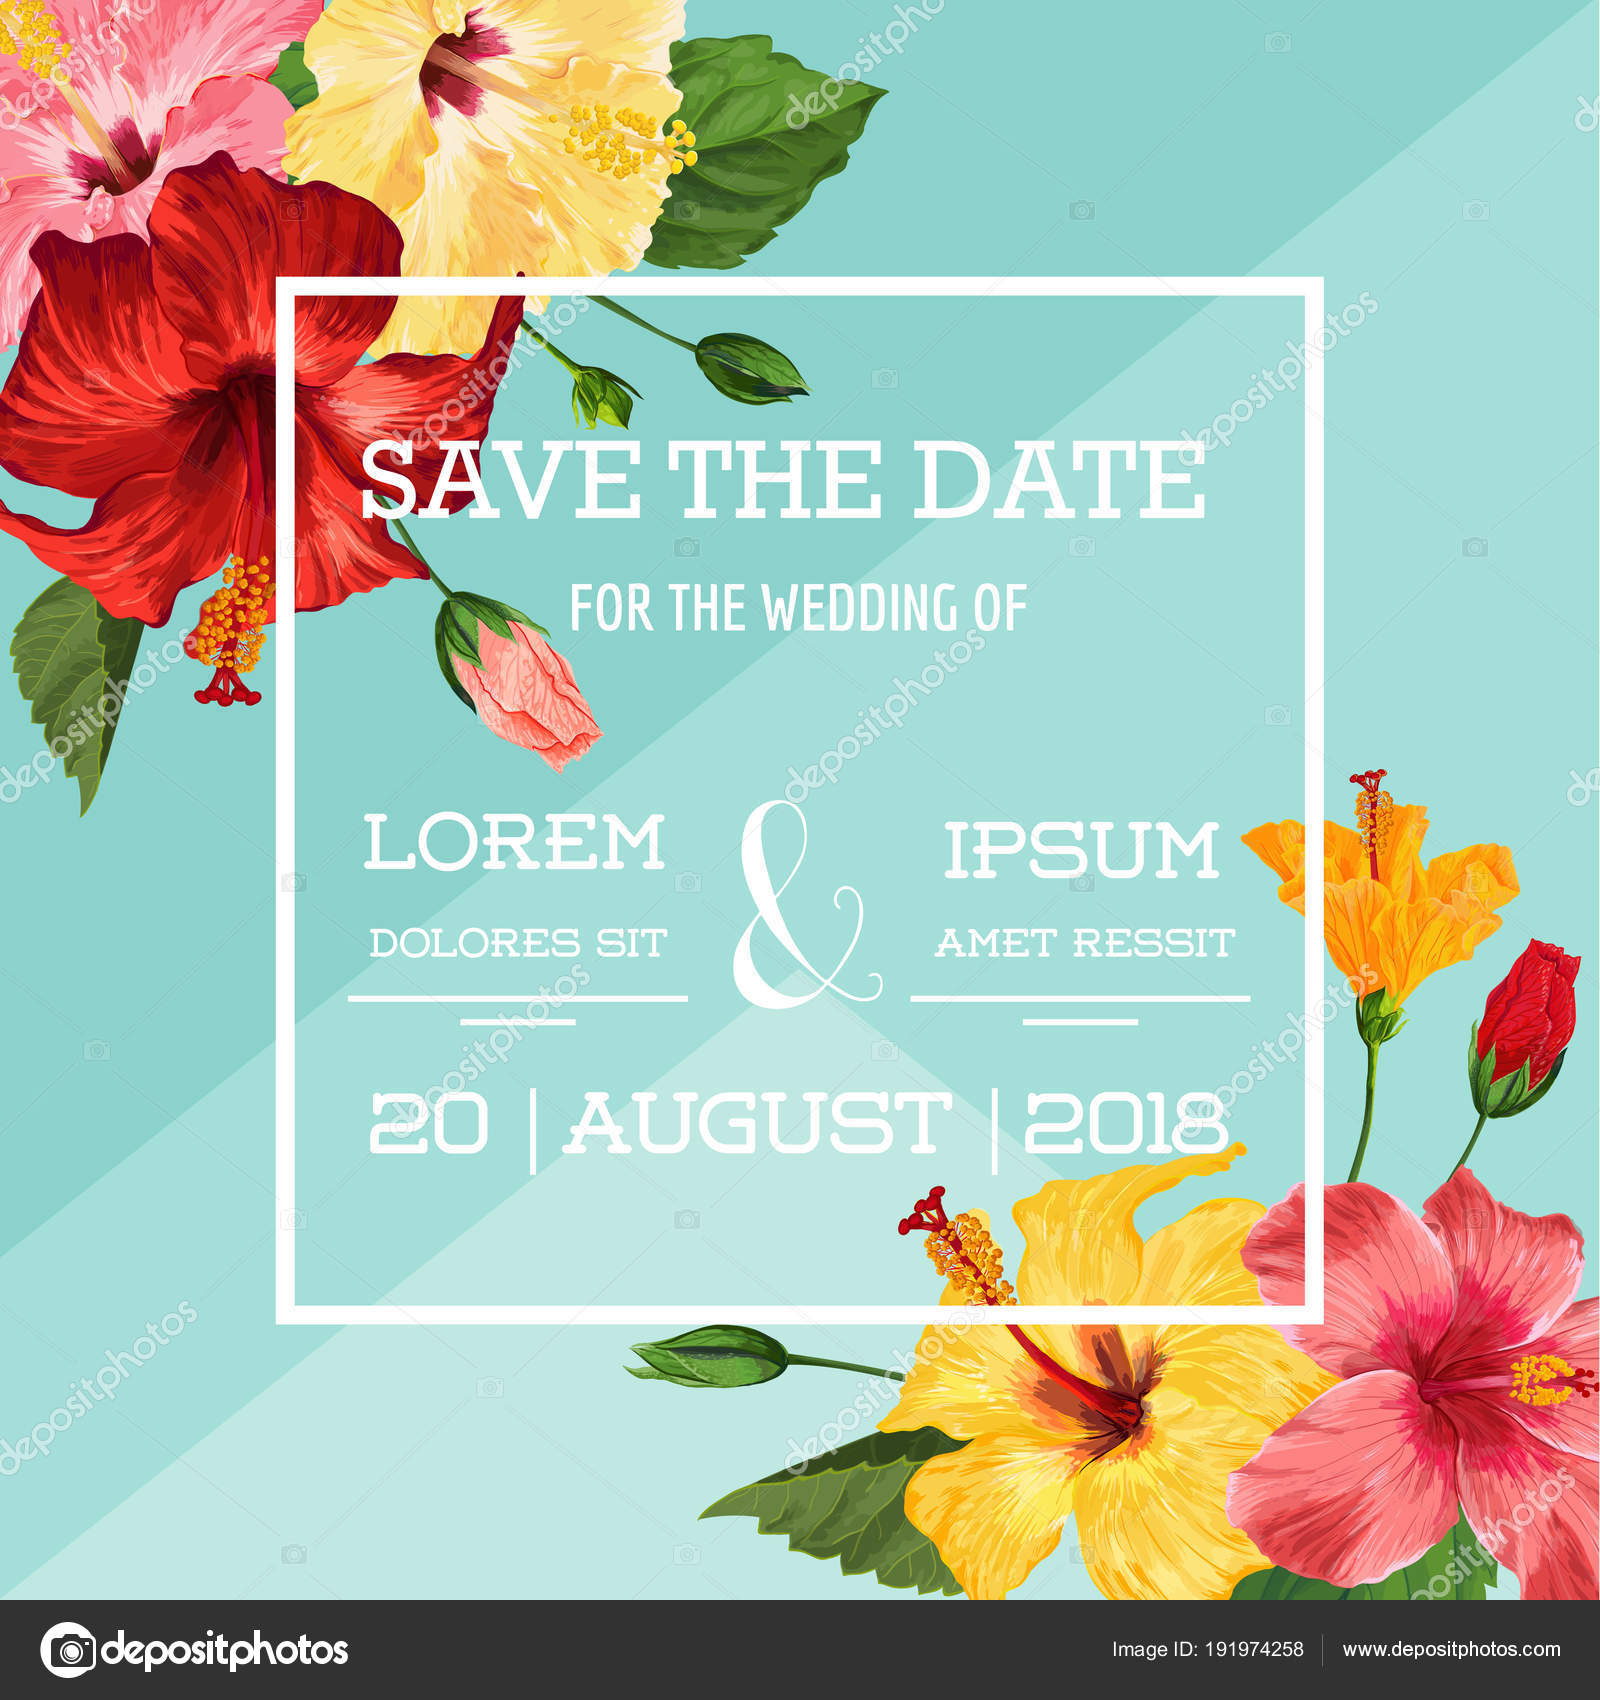 Wedding invitation template with red hibiscus flowers save the date wedding invitation template with red hibiscus flowers save the date floral card for greetings izmirmasajfo